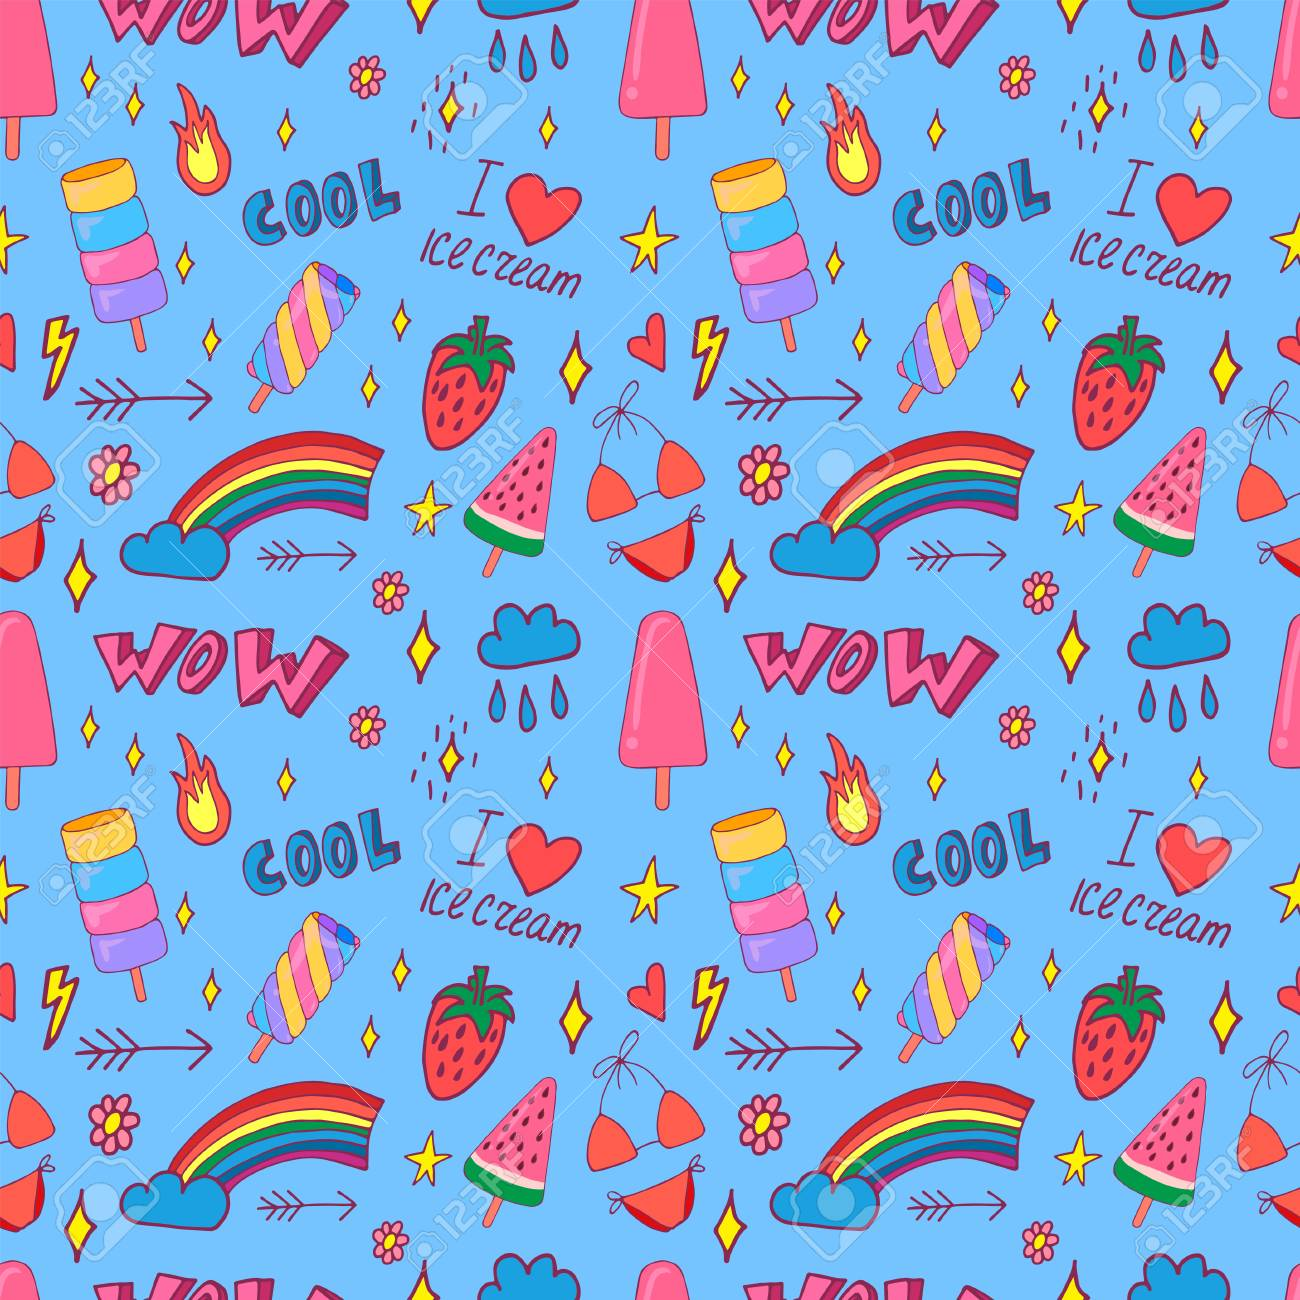 Stylish Pop Art Seamless Pattern With Decoration Element Such